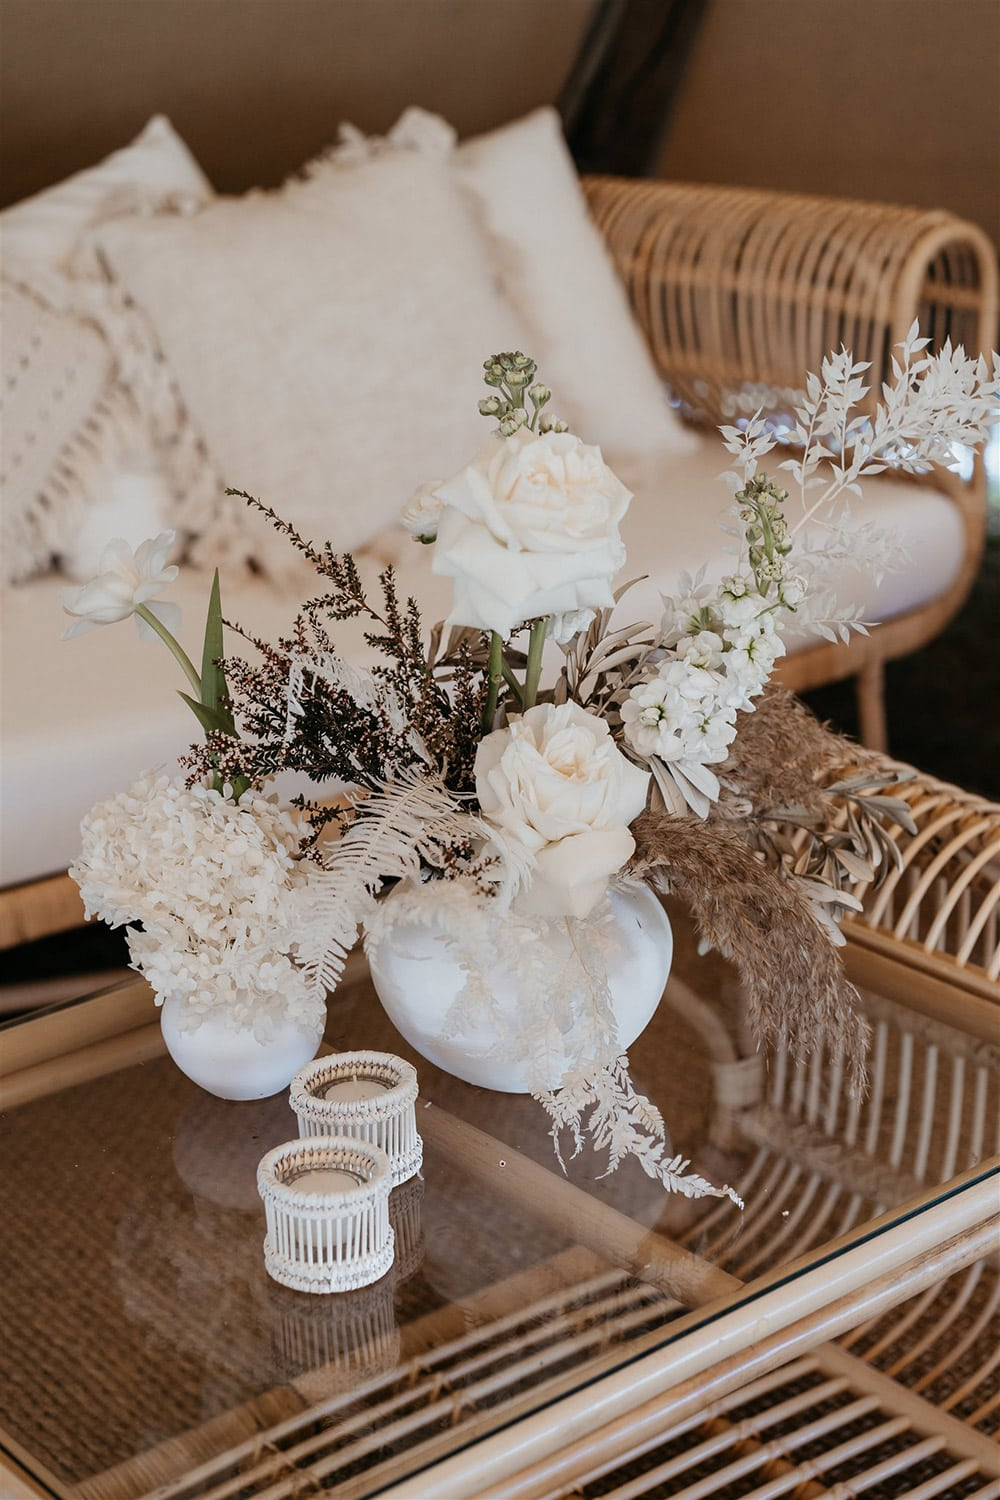 Outdoor Festival Bohemian Wedding Inspiration   ealight holders and fresh blooms in white vases. Potted plants in wicker baskets add lush greenery to this cool space.   Photography: Shae Estella Photo